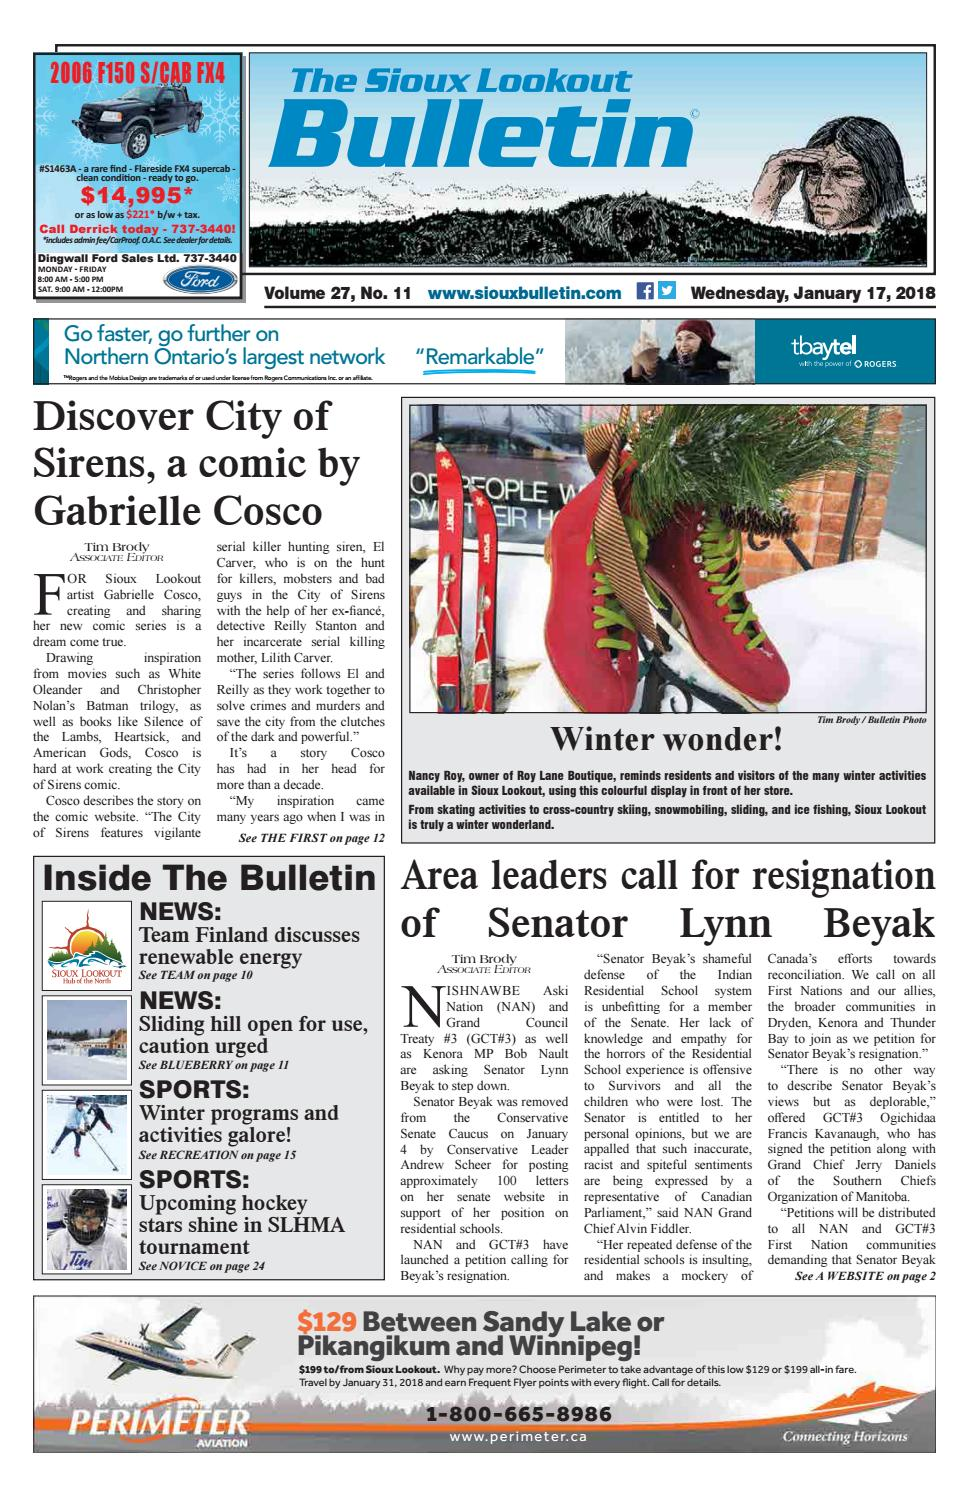 The Sioux Lookout Bulletin - Vol  27, No  11, January 17, 2018 by